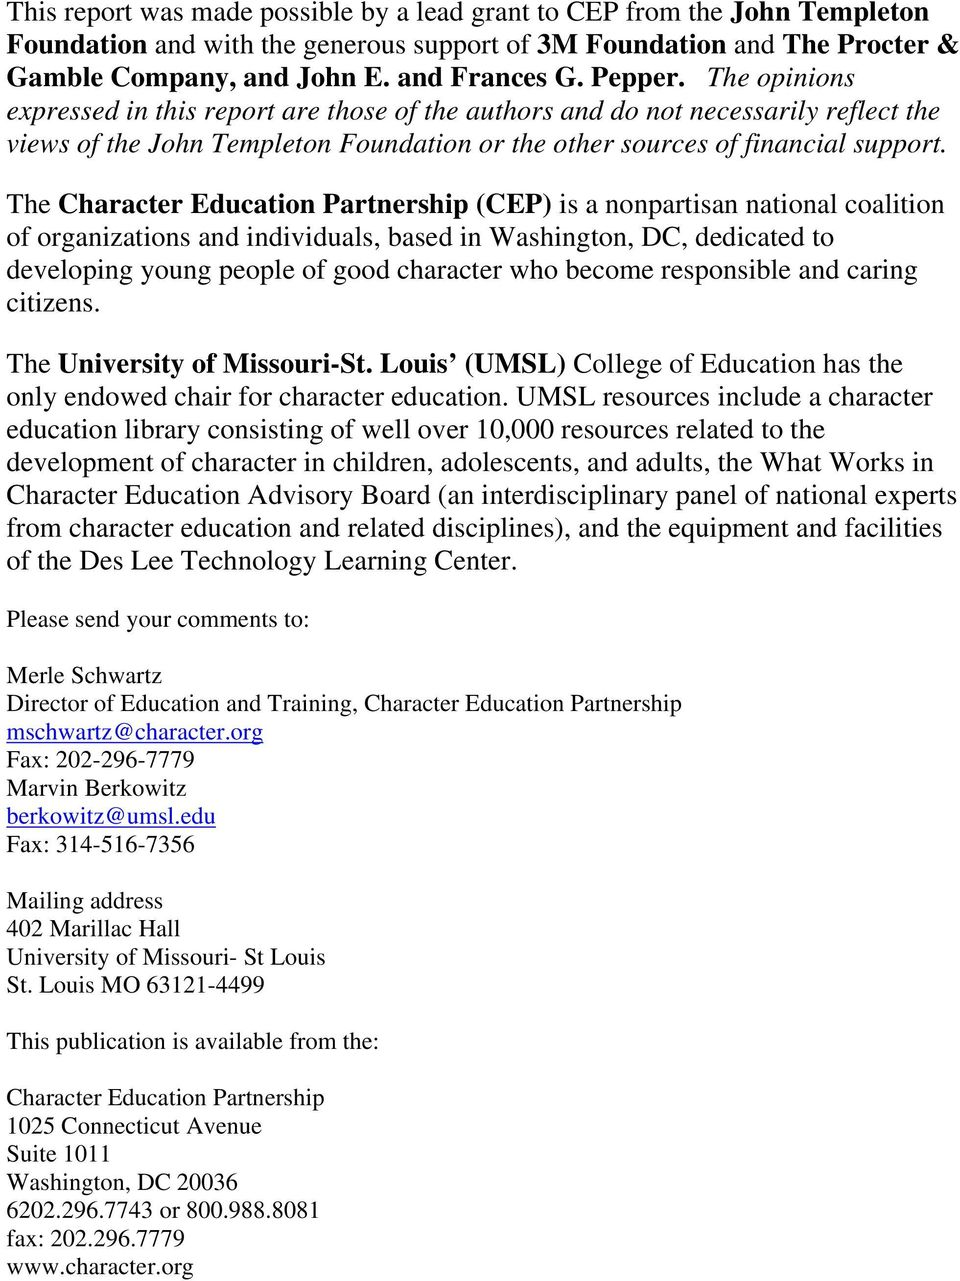 The Character Education Partnership (CEP) is a nonpartisan national coalition of organizations and individuals, based in Washington, DC, dedicated to developing young people of good character who